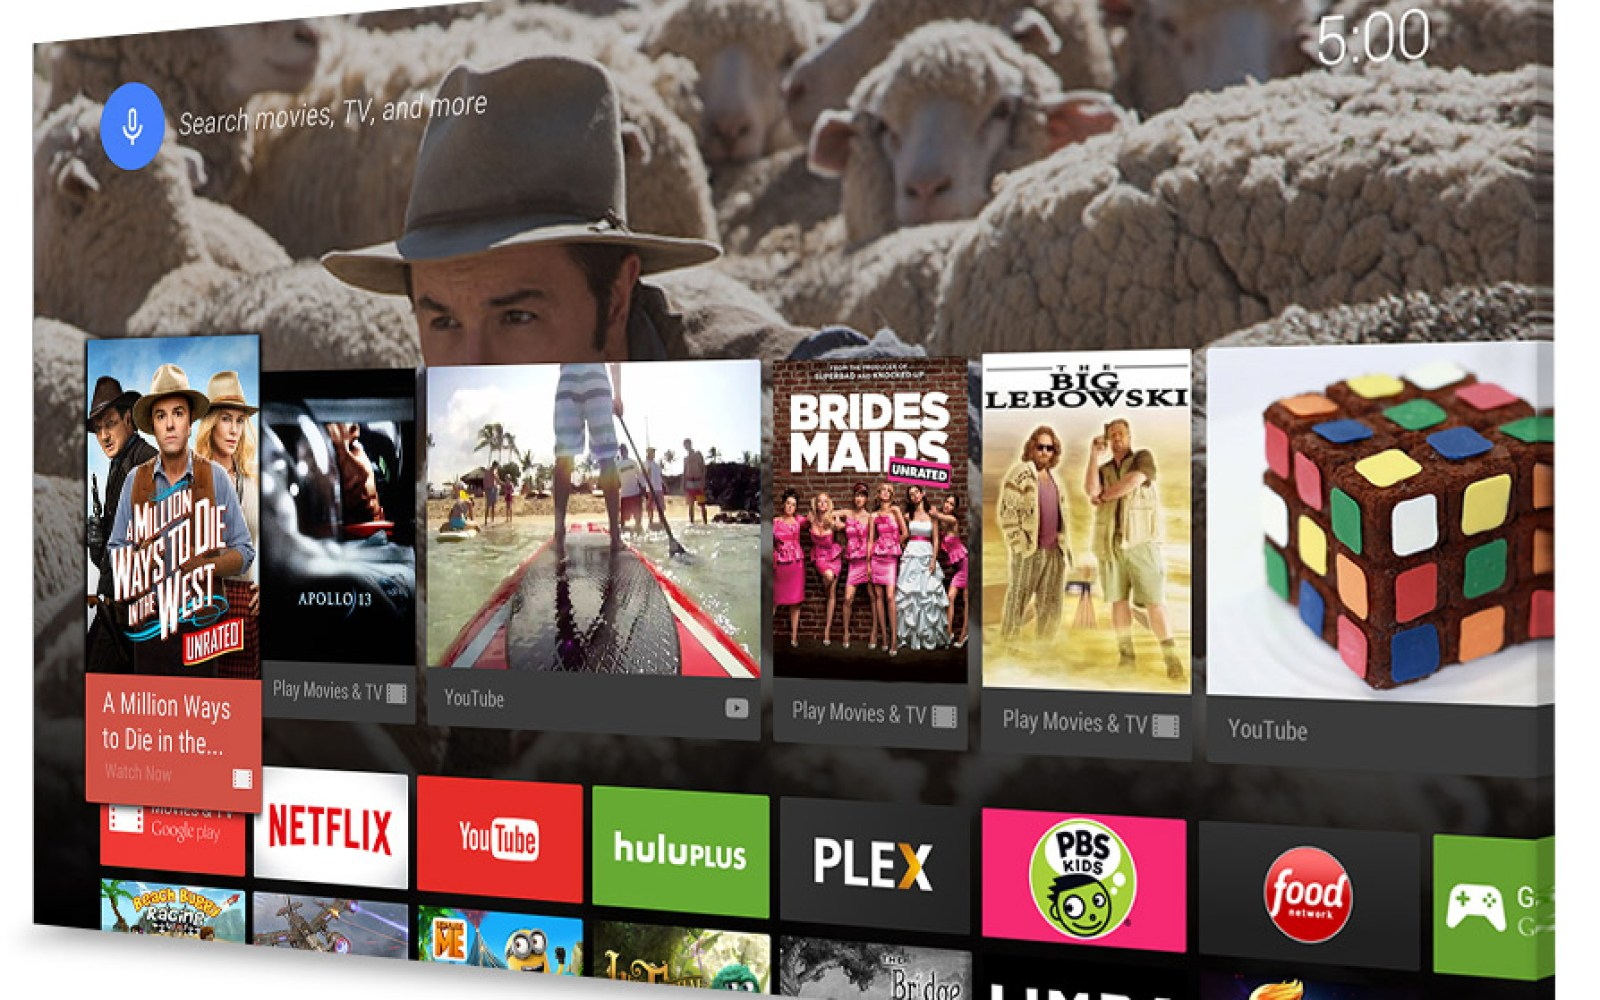 New Android TV apps arrive as update revamps app discovery for the platform